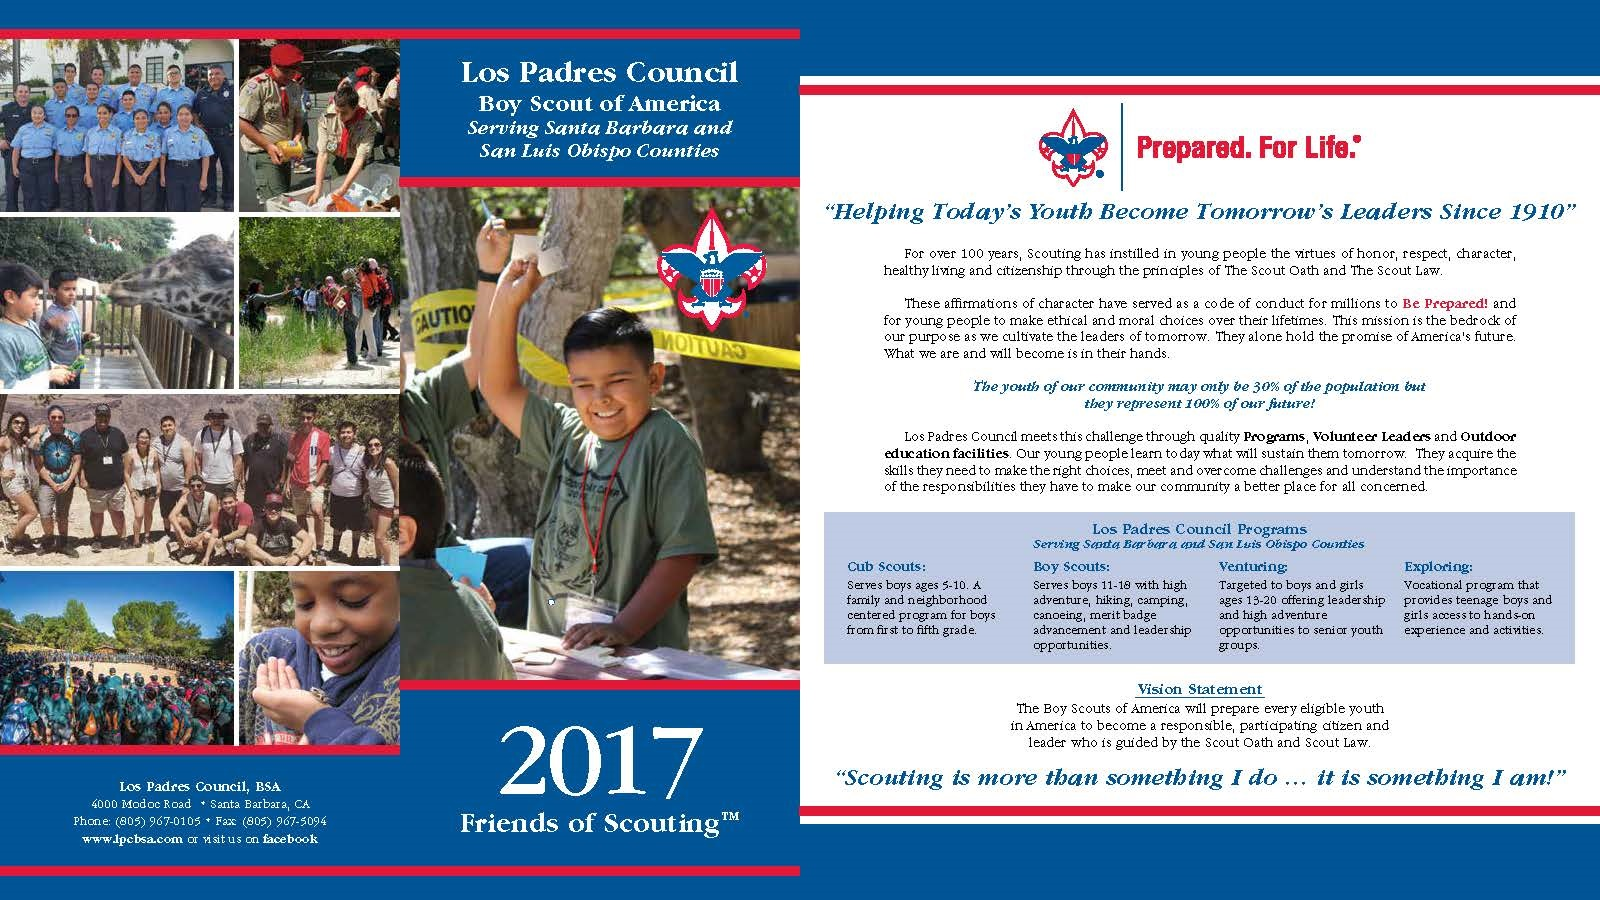 2017 Friends of Scouting Front Side